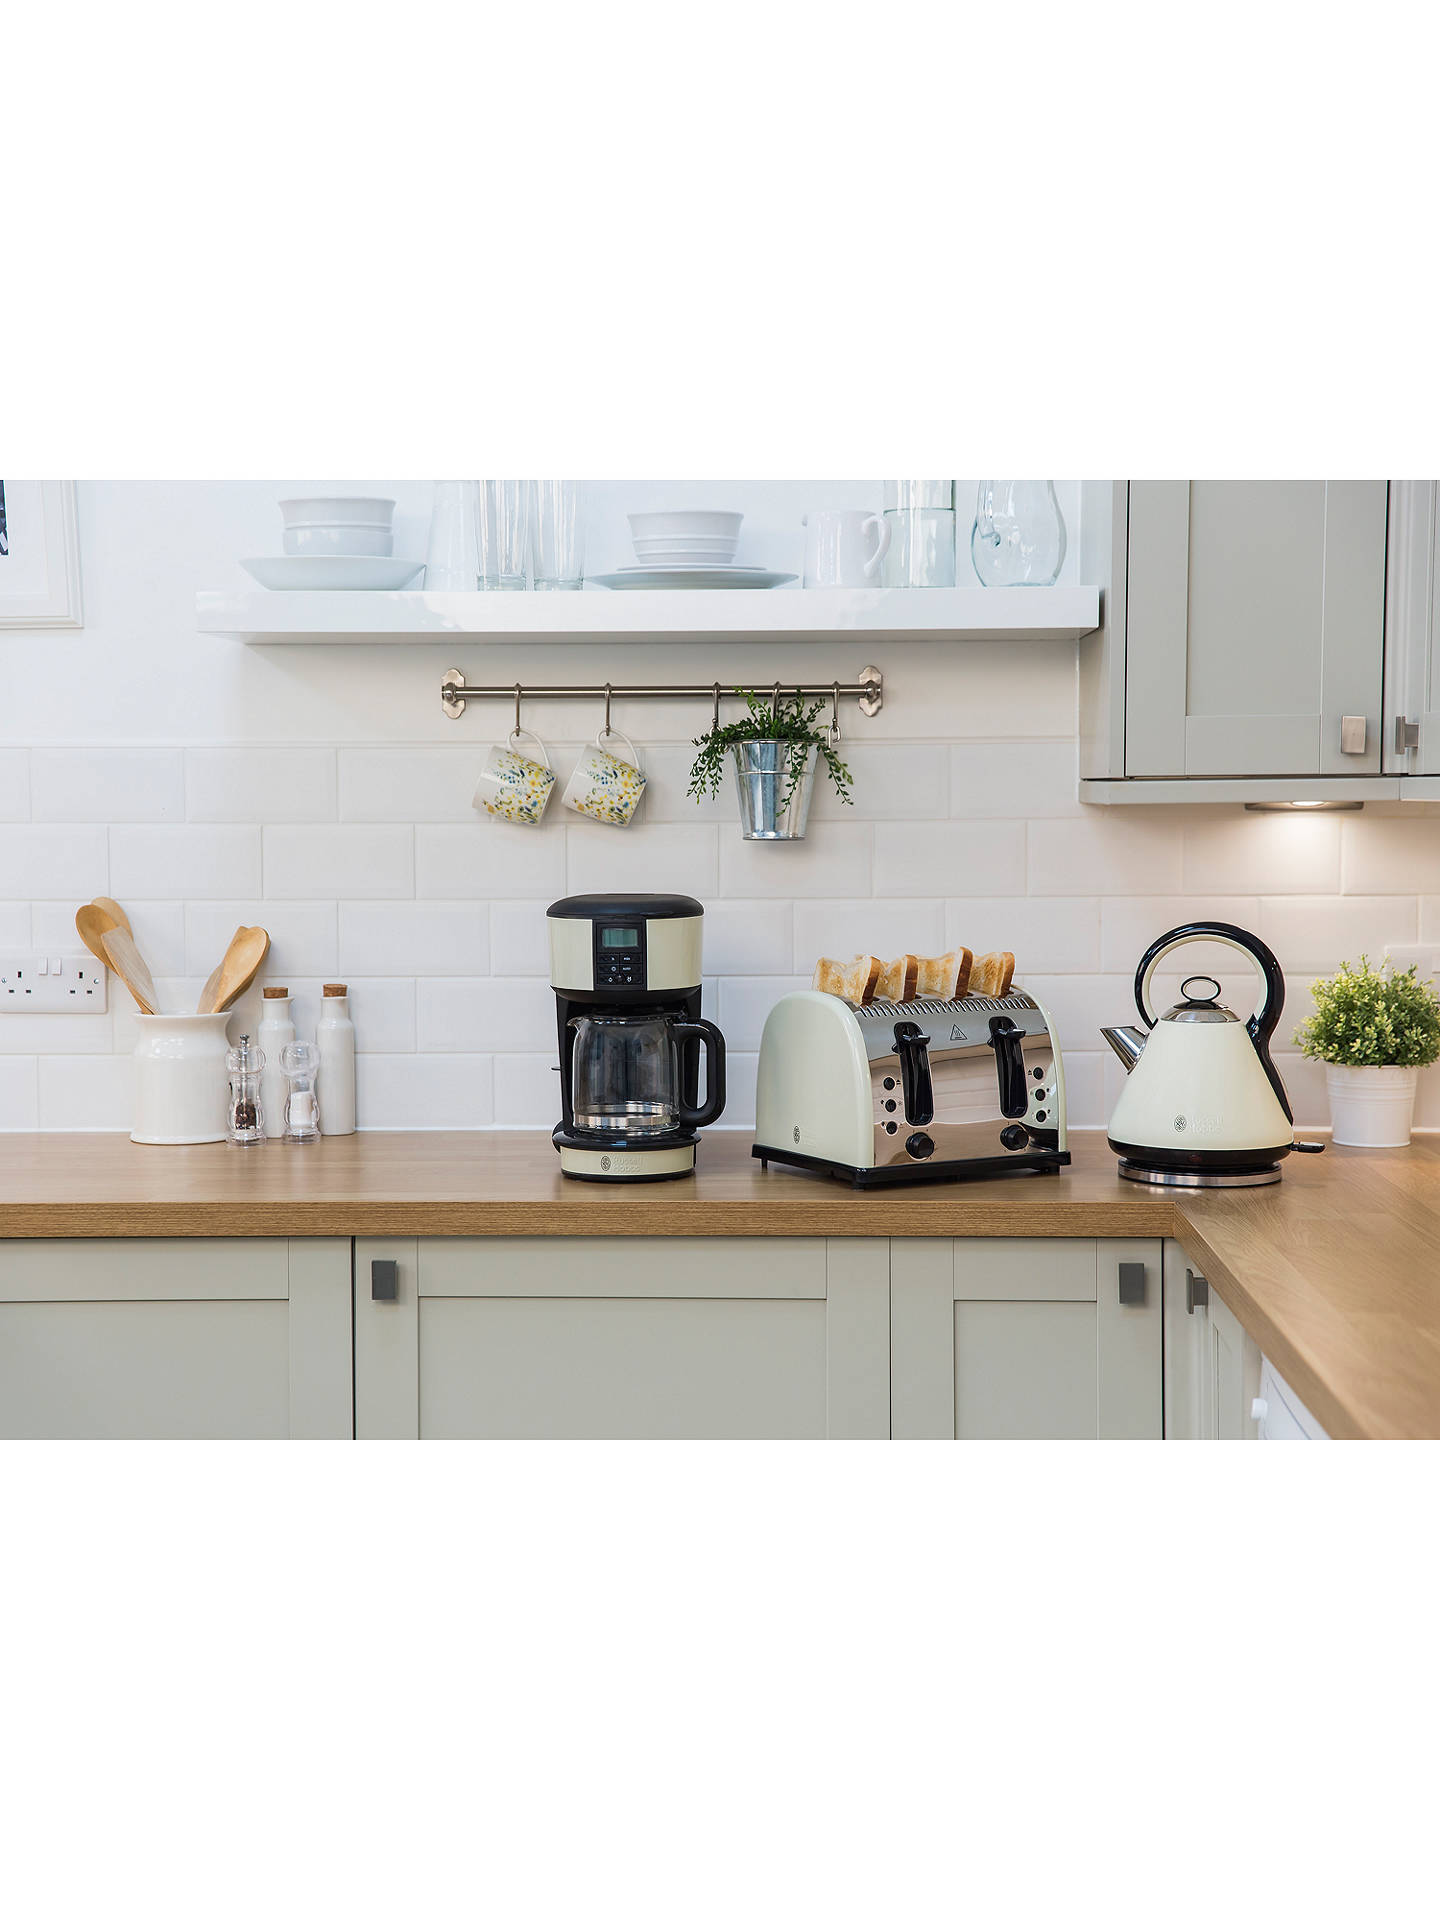 BuyRussell Hobbs Quiet Boil Kettle, Cream Online at johnlewis.com